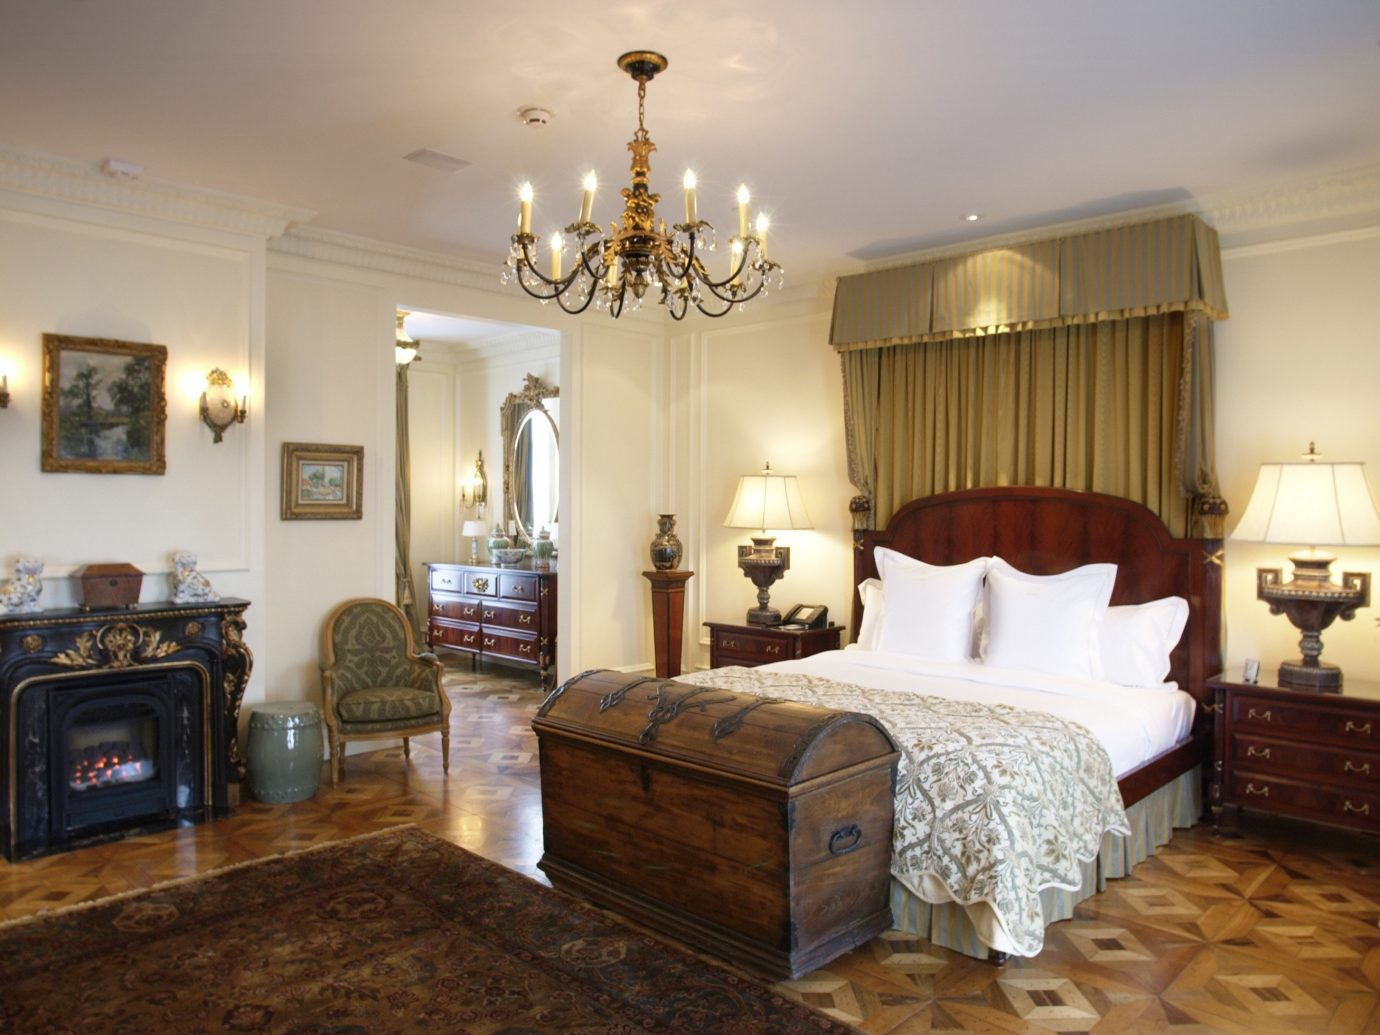 Boutique Hotels Chicago Hotels wall indoor floor room Living property ceiling Bedroom estate living room home hardwood interior design mansion real estate cottage Suite furniture farmhouse decorated containing